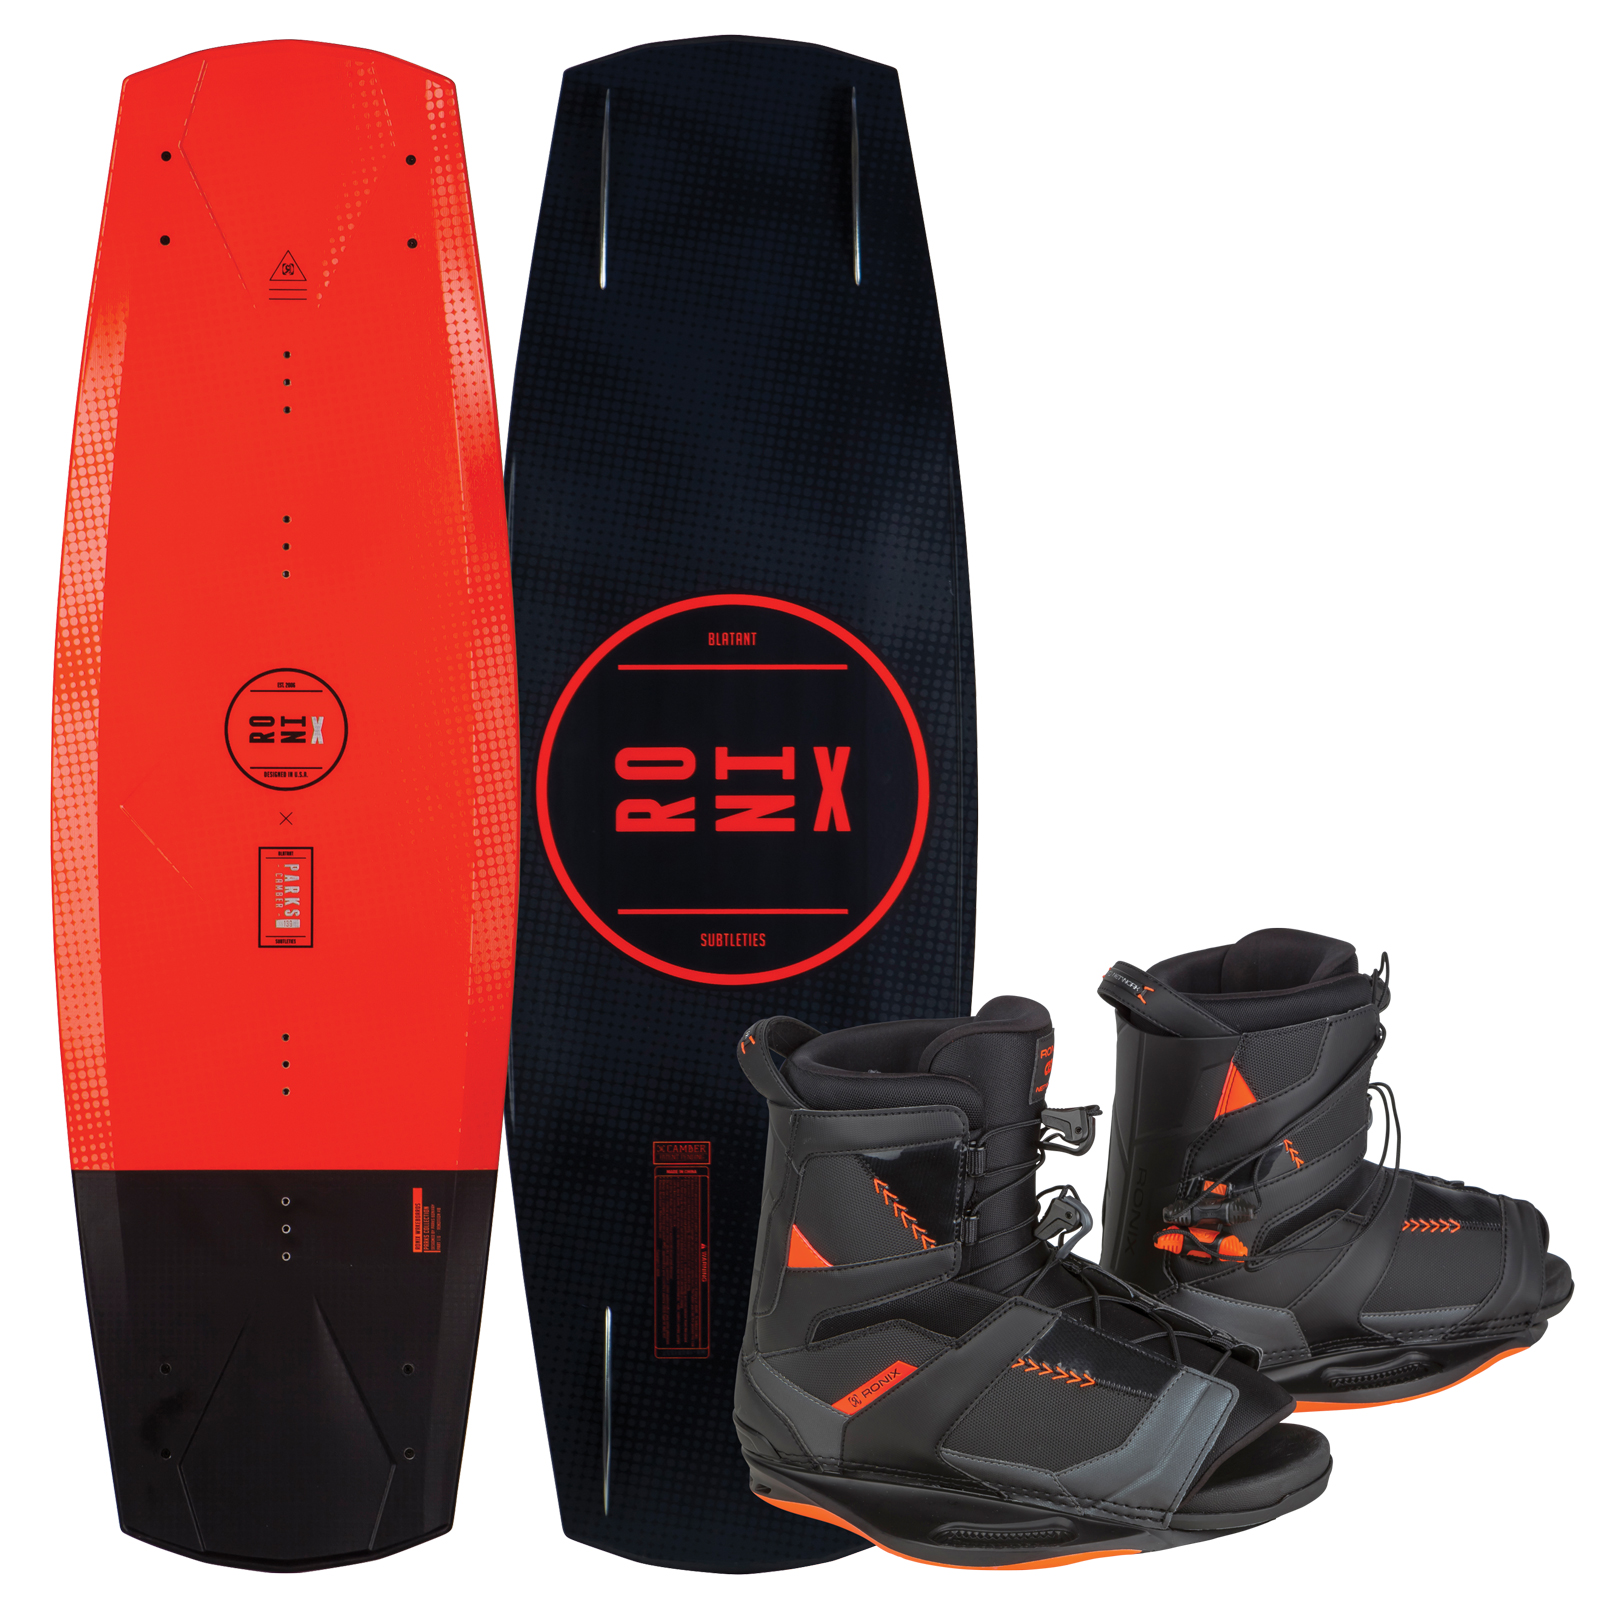 PARKS MODELLO 134 W/ NETWORK PACKAGE RONIX 2017